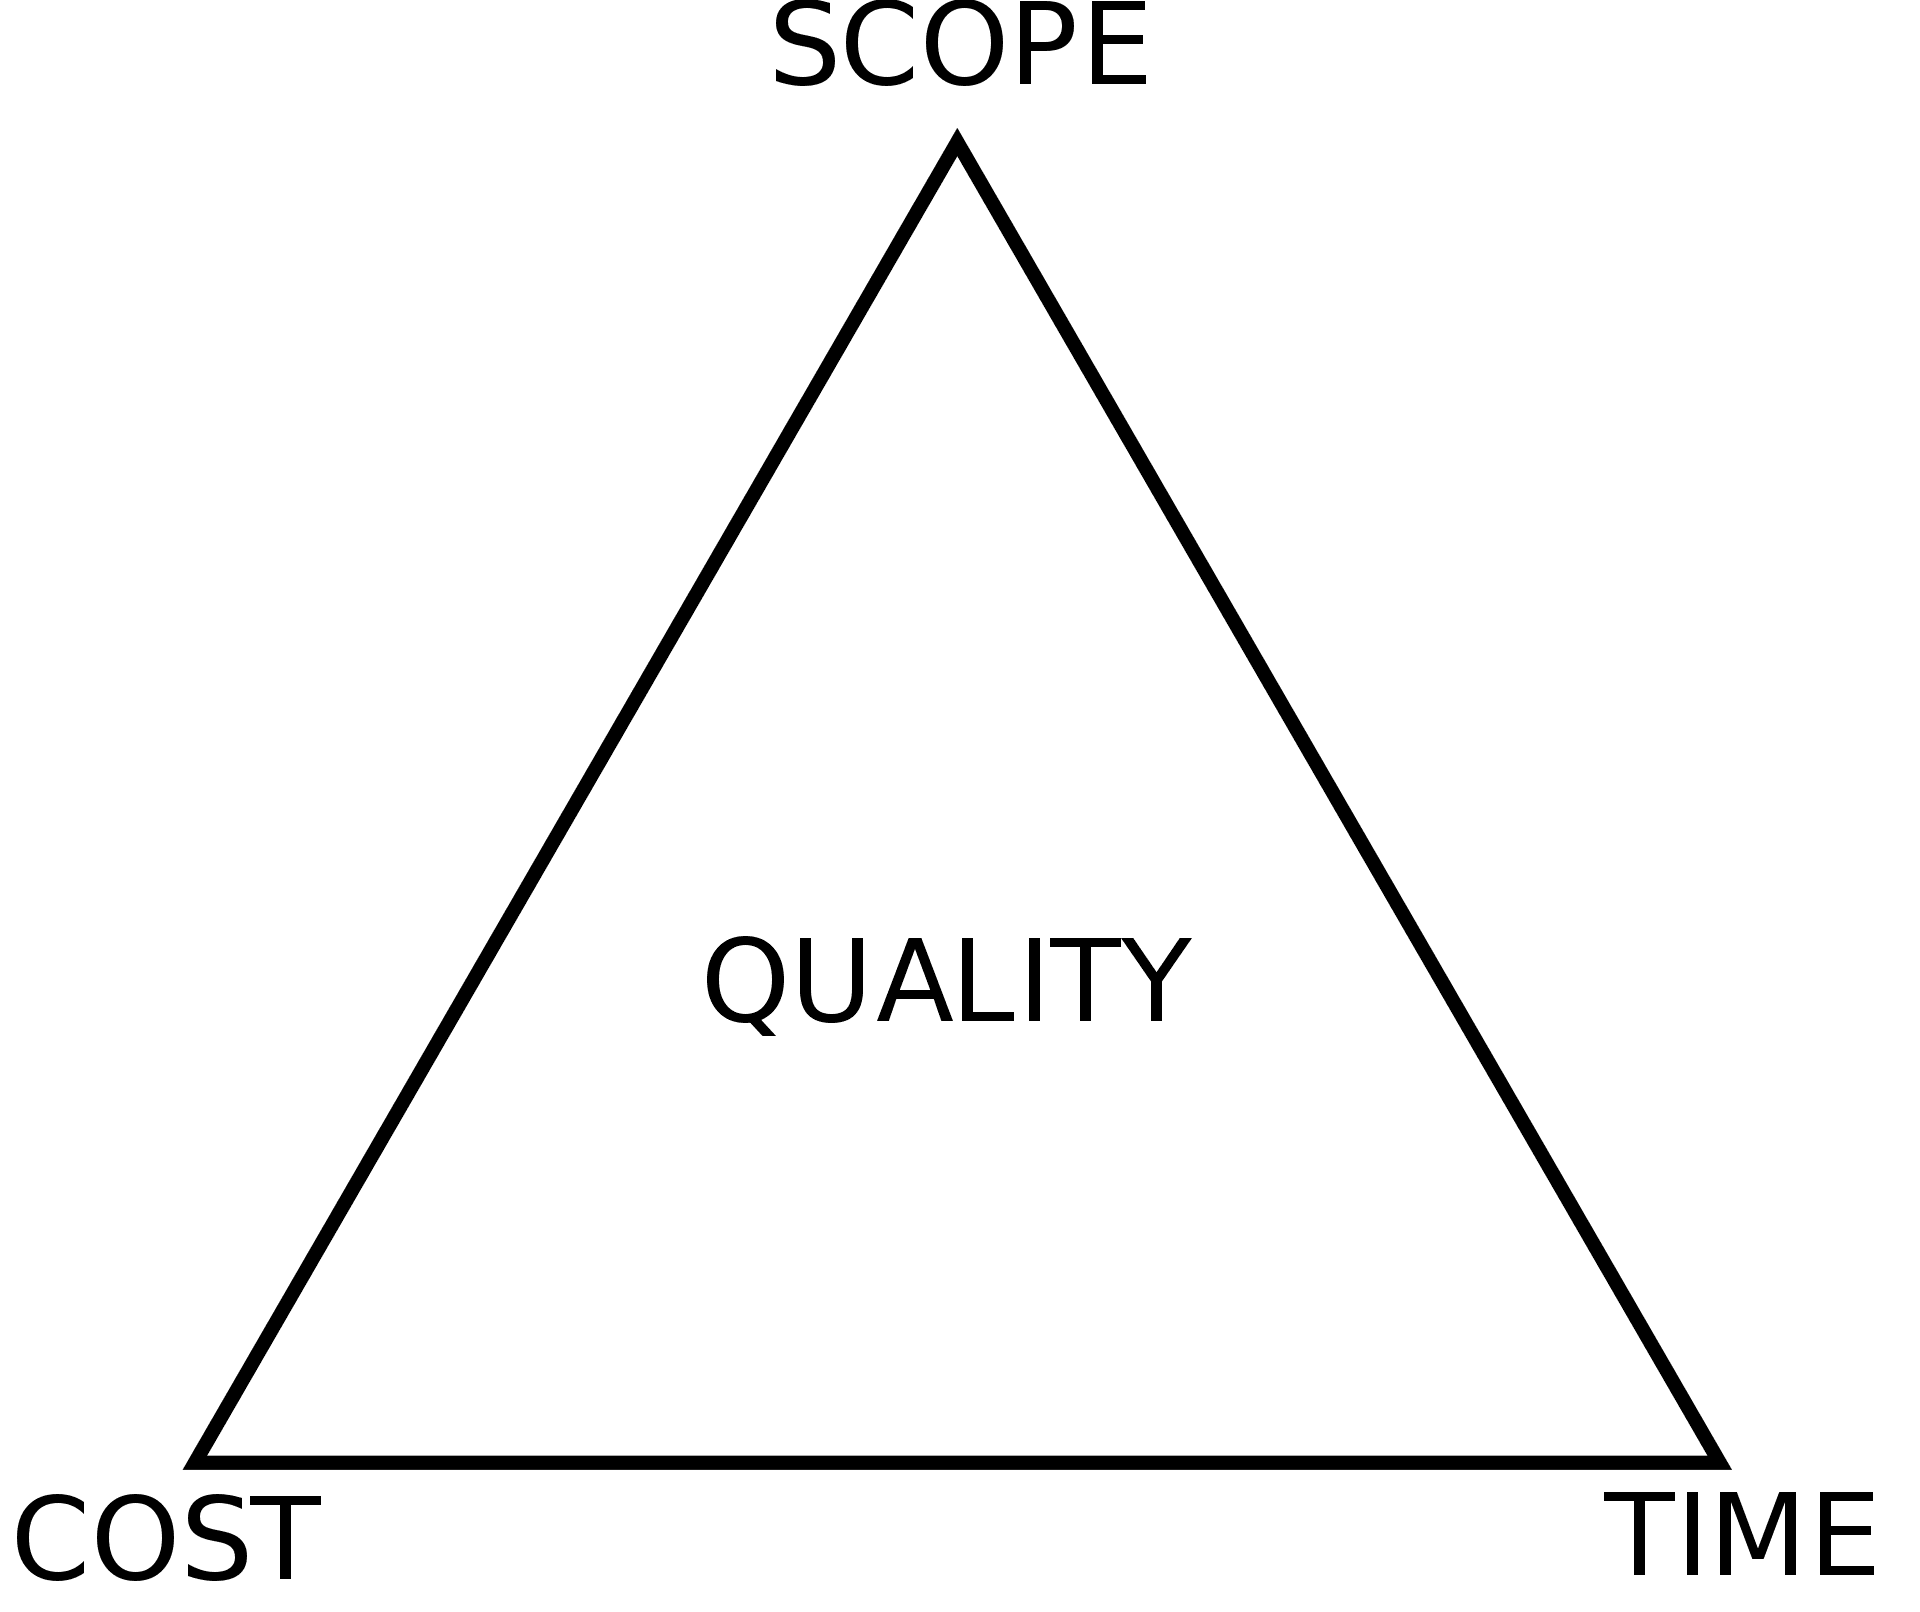 The triple constraint triangle